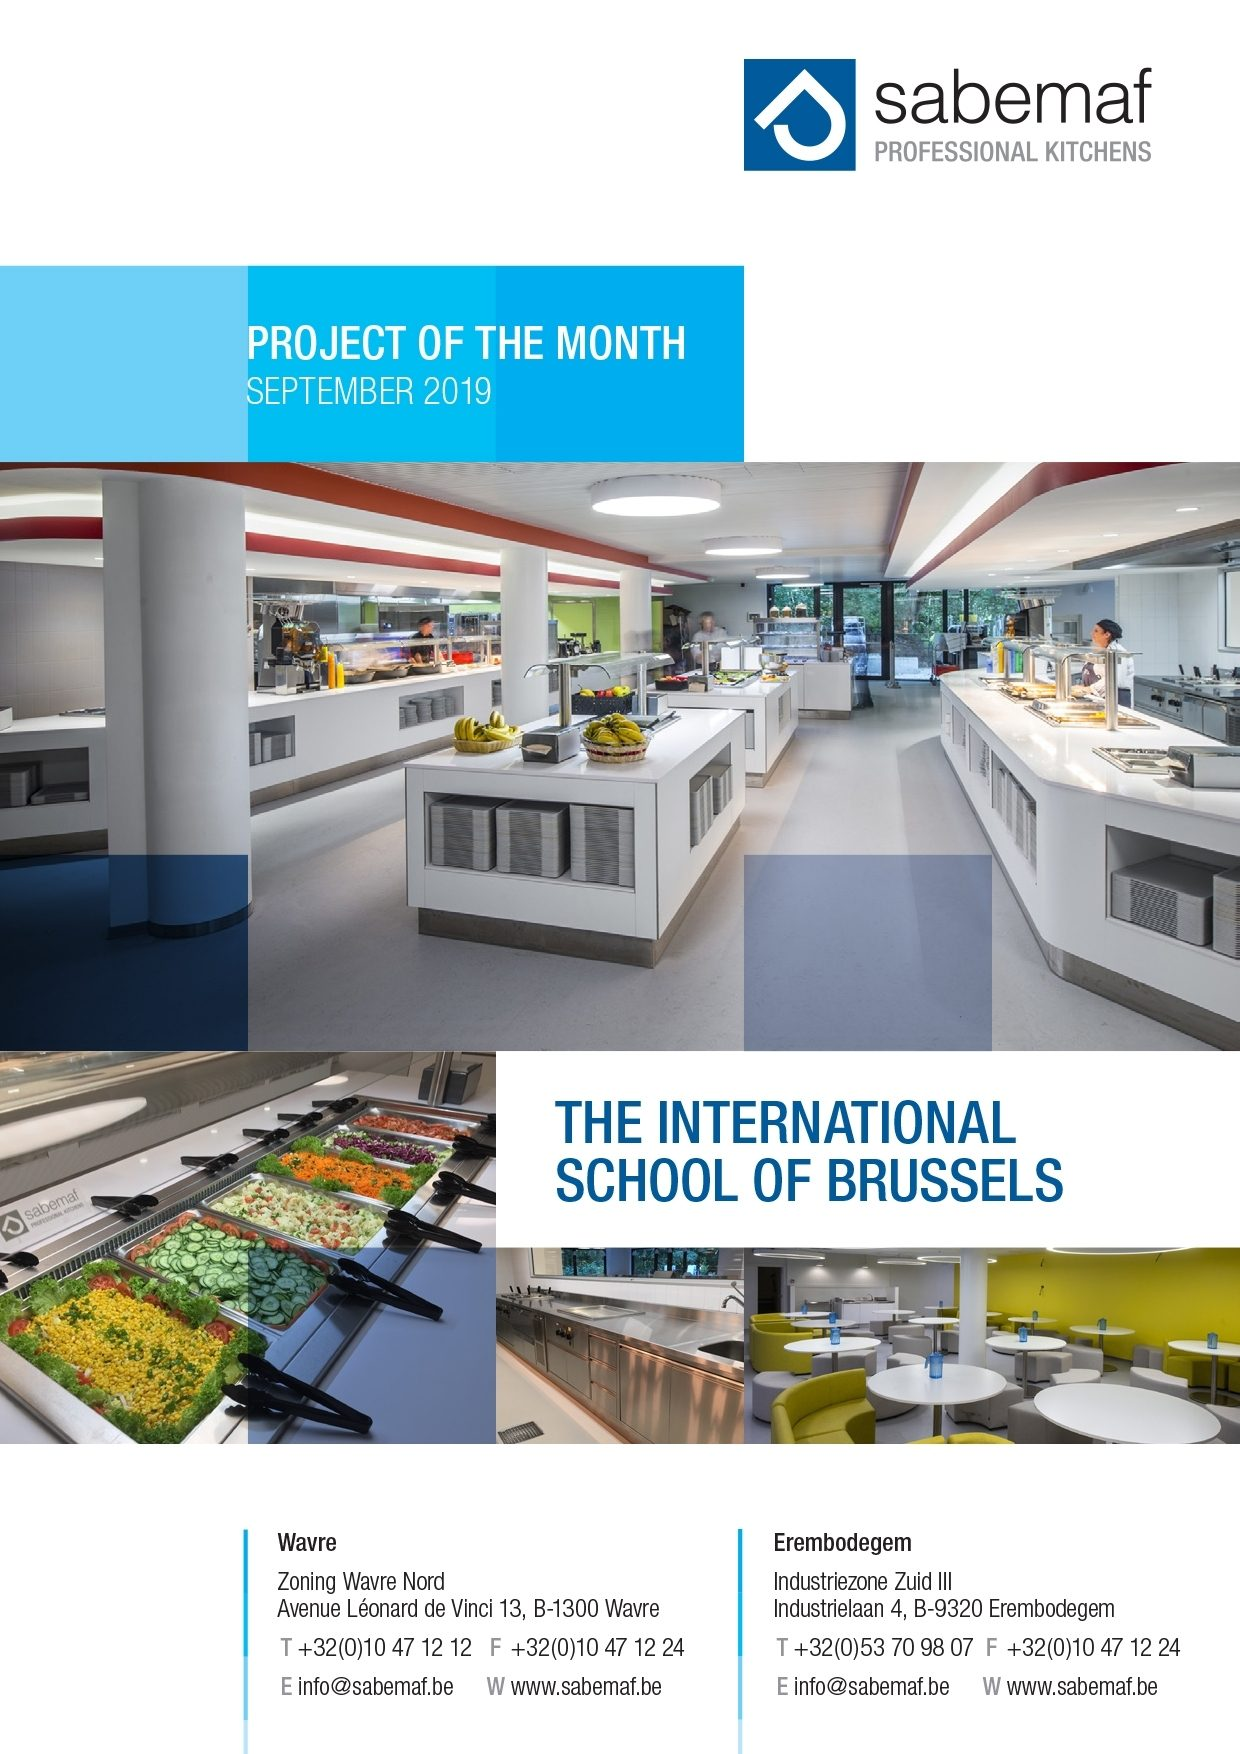 Project of the month - September 2019 - The International School of Brussels